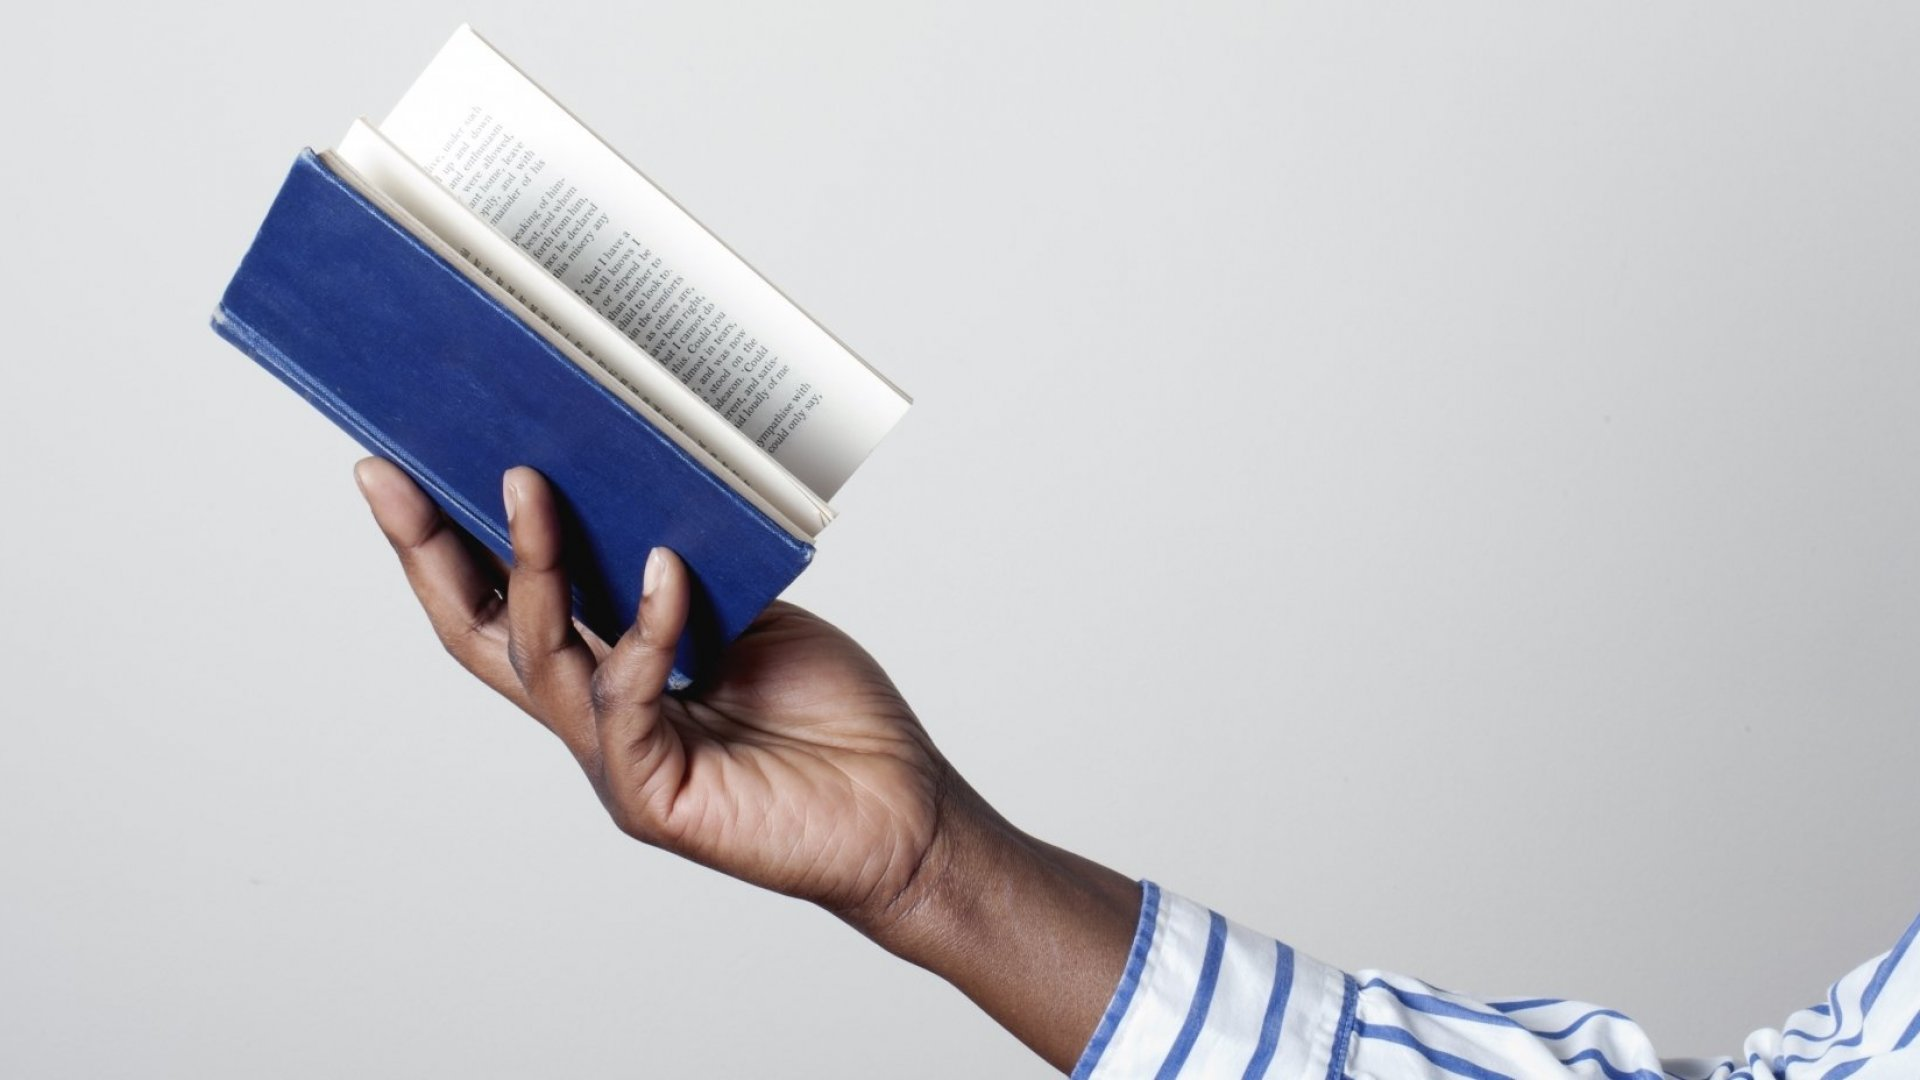 10 Books Every Aspiring Entrepreneur Should Read Before They Start a Business